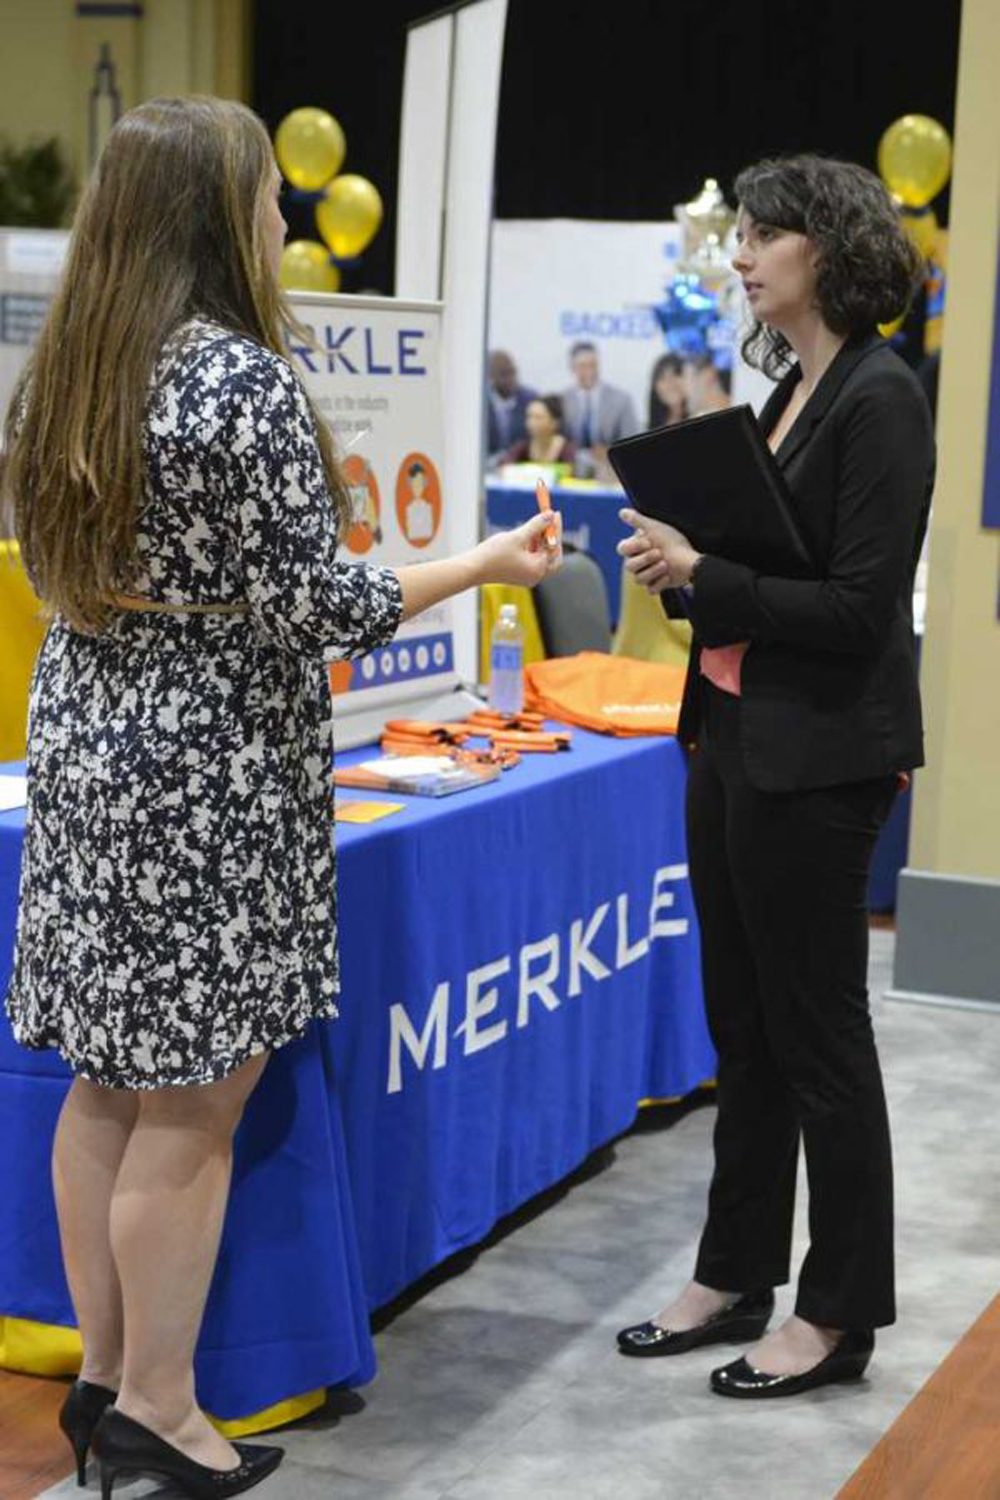 Pitt's Career Center offer various services including resumé reviews and information about upcoming career and internship fairs.